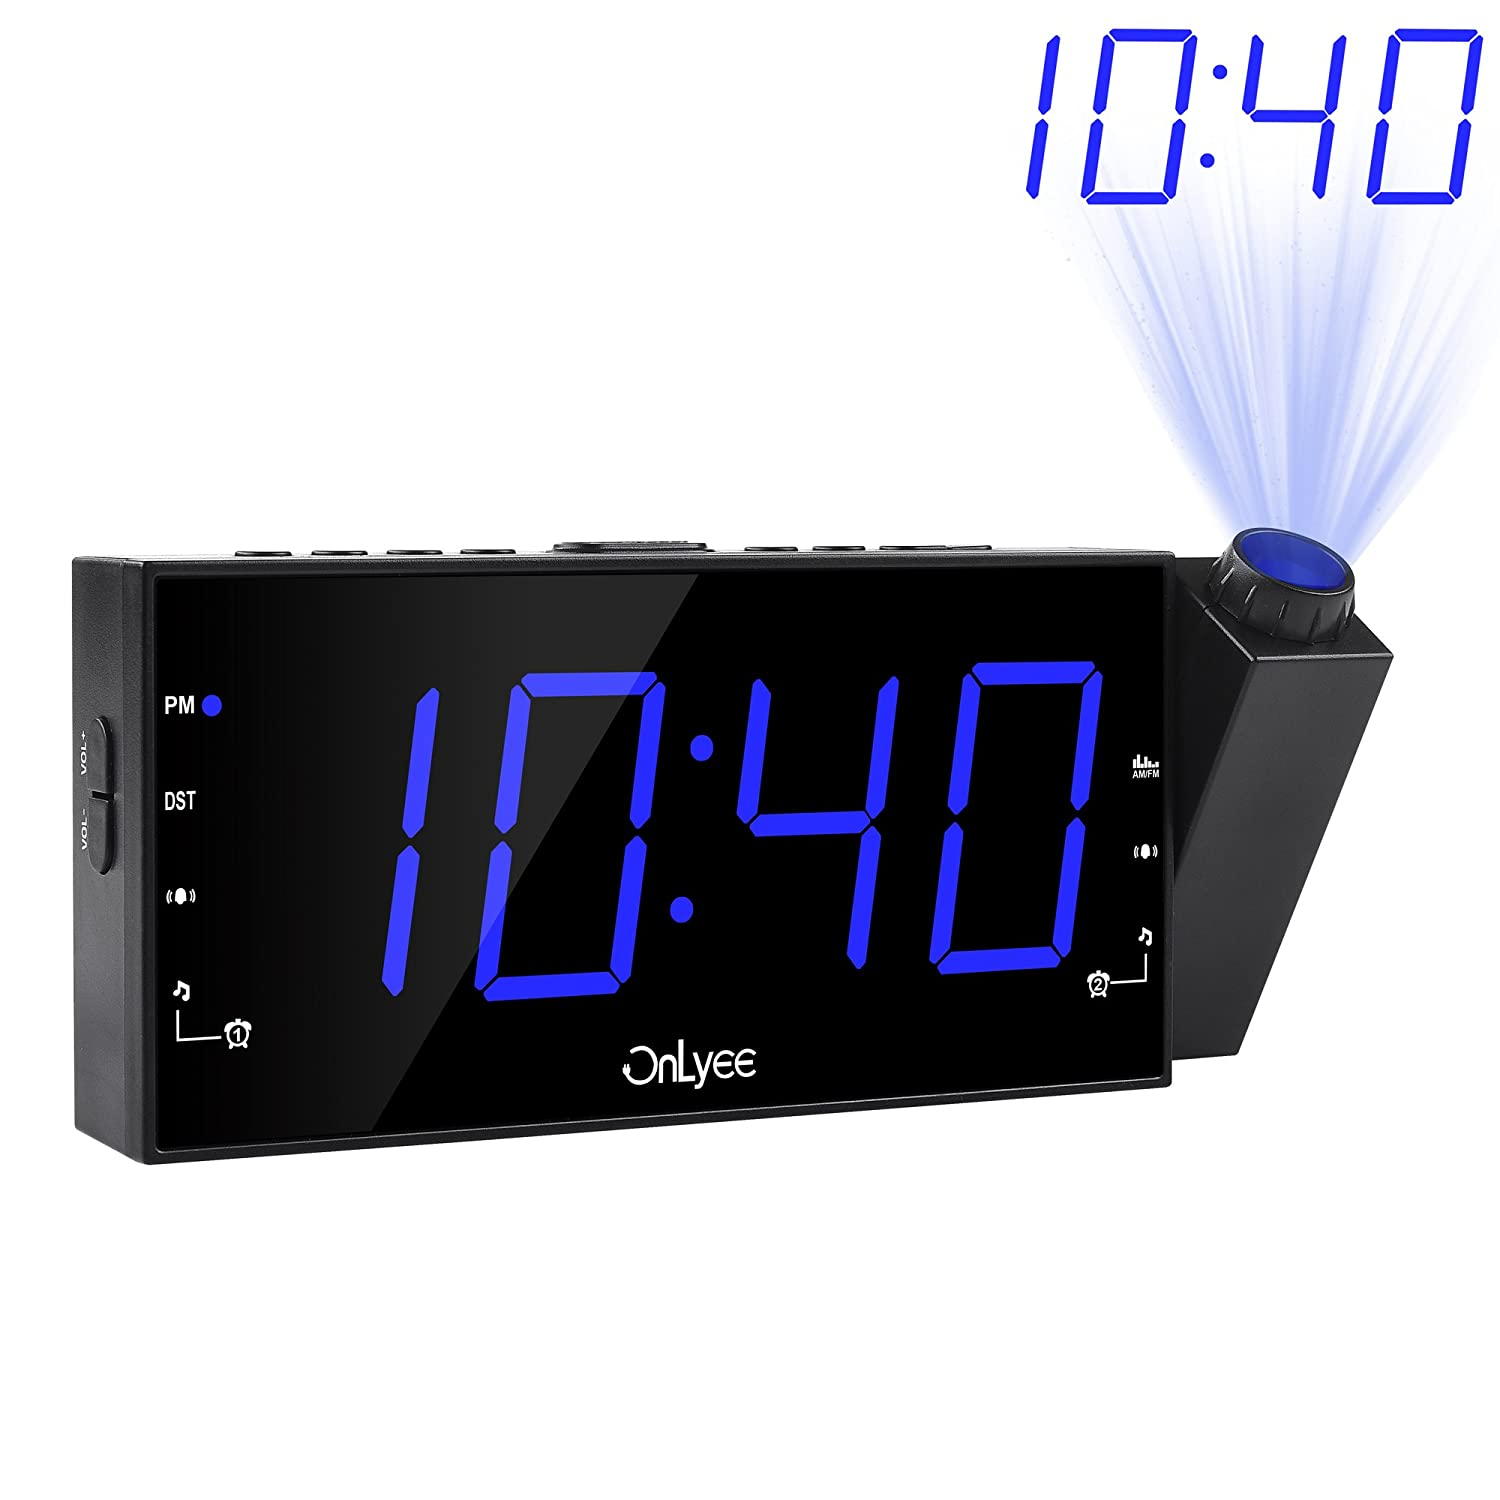 Amazoncom OnLyee Projection Ceiling Wall Clock AM